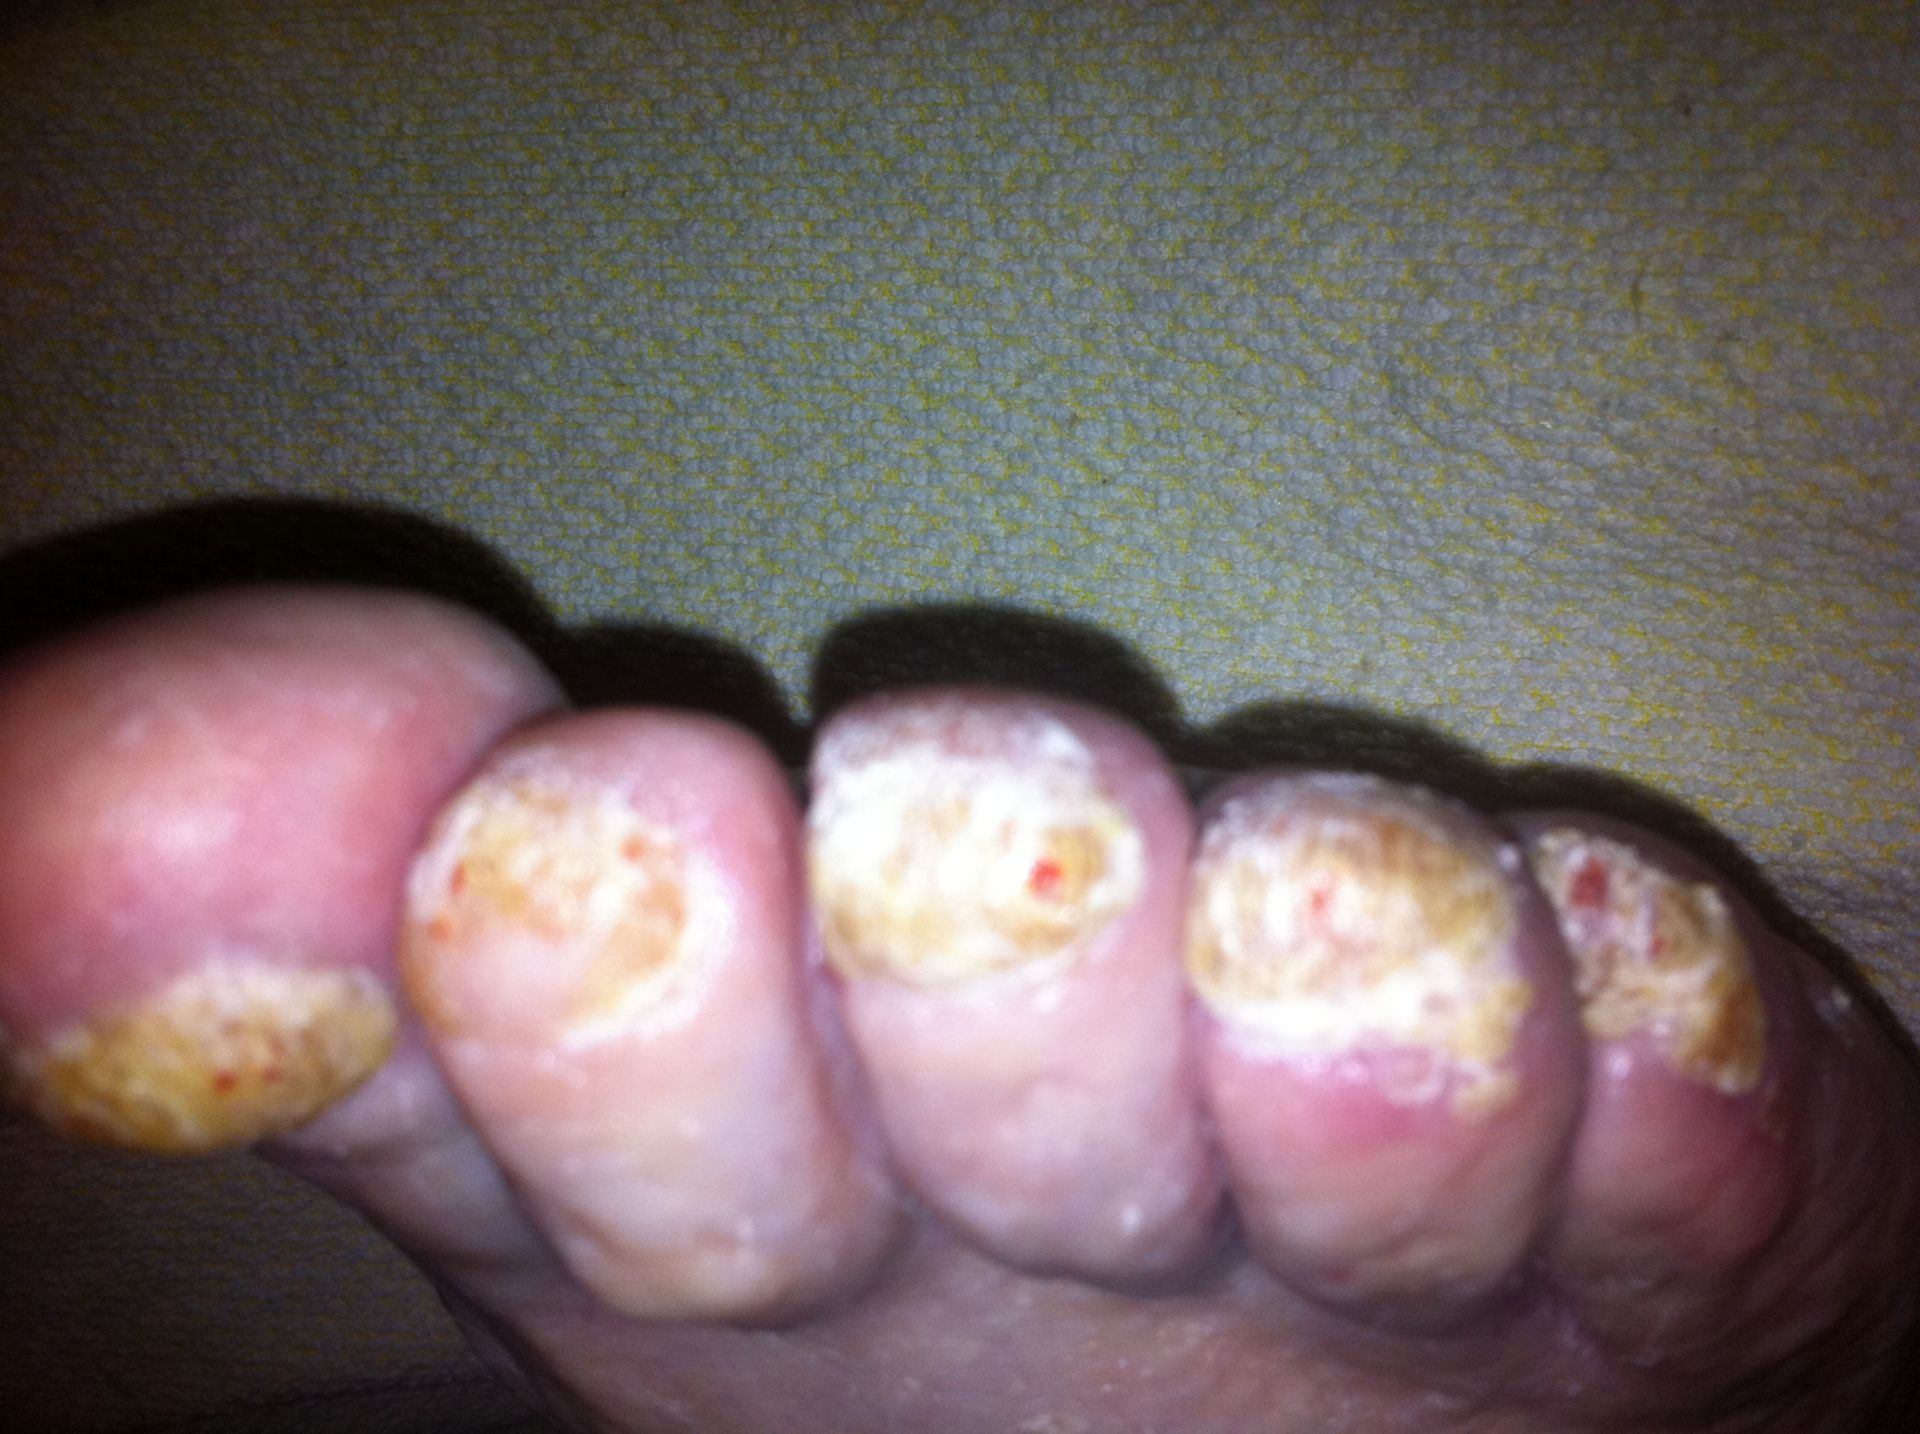 Psoriasis in the toe nail